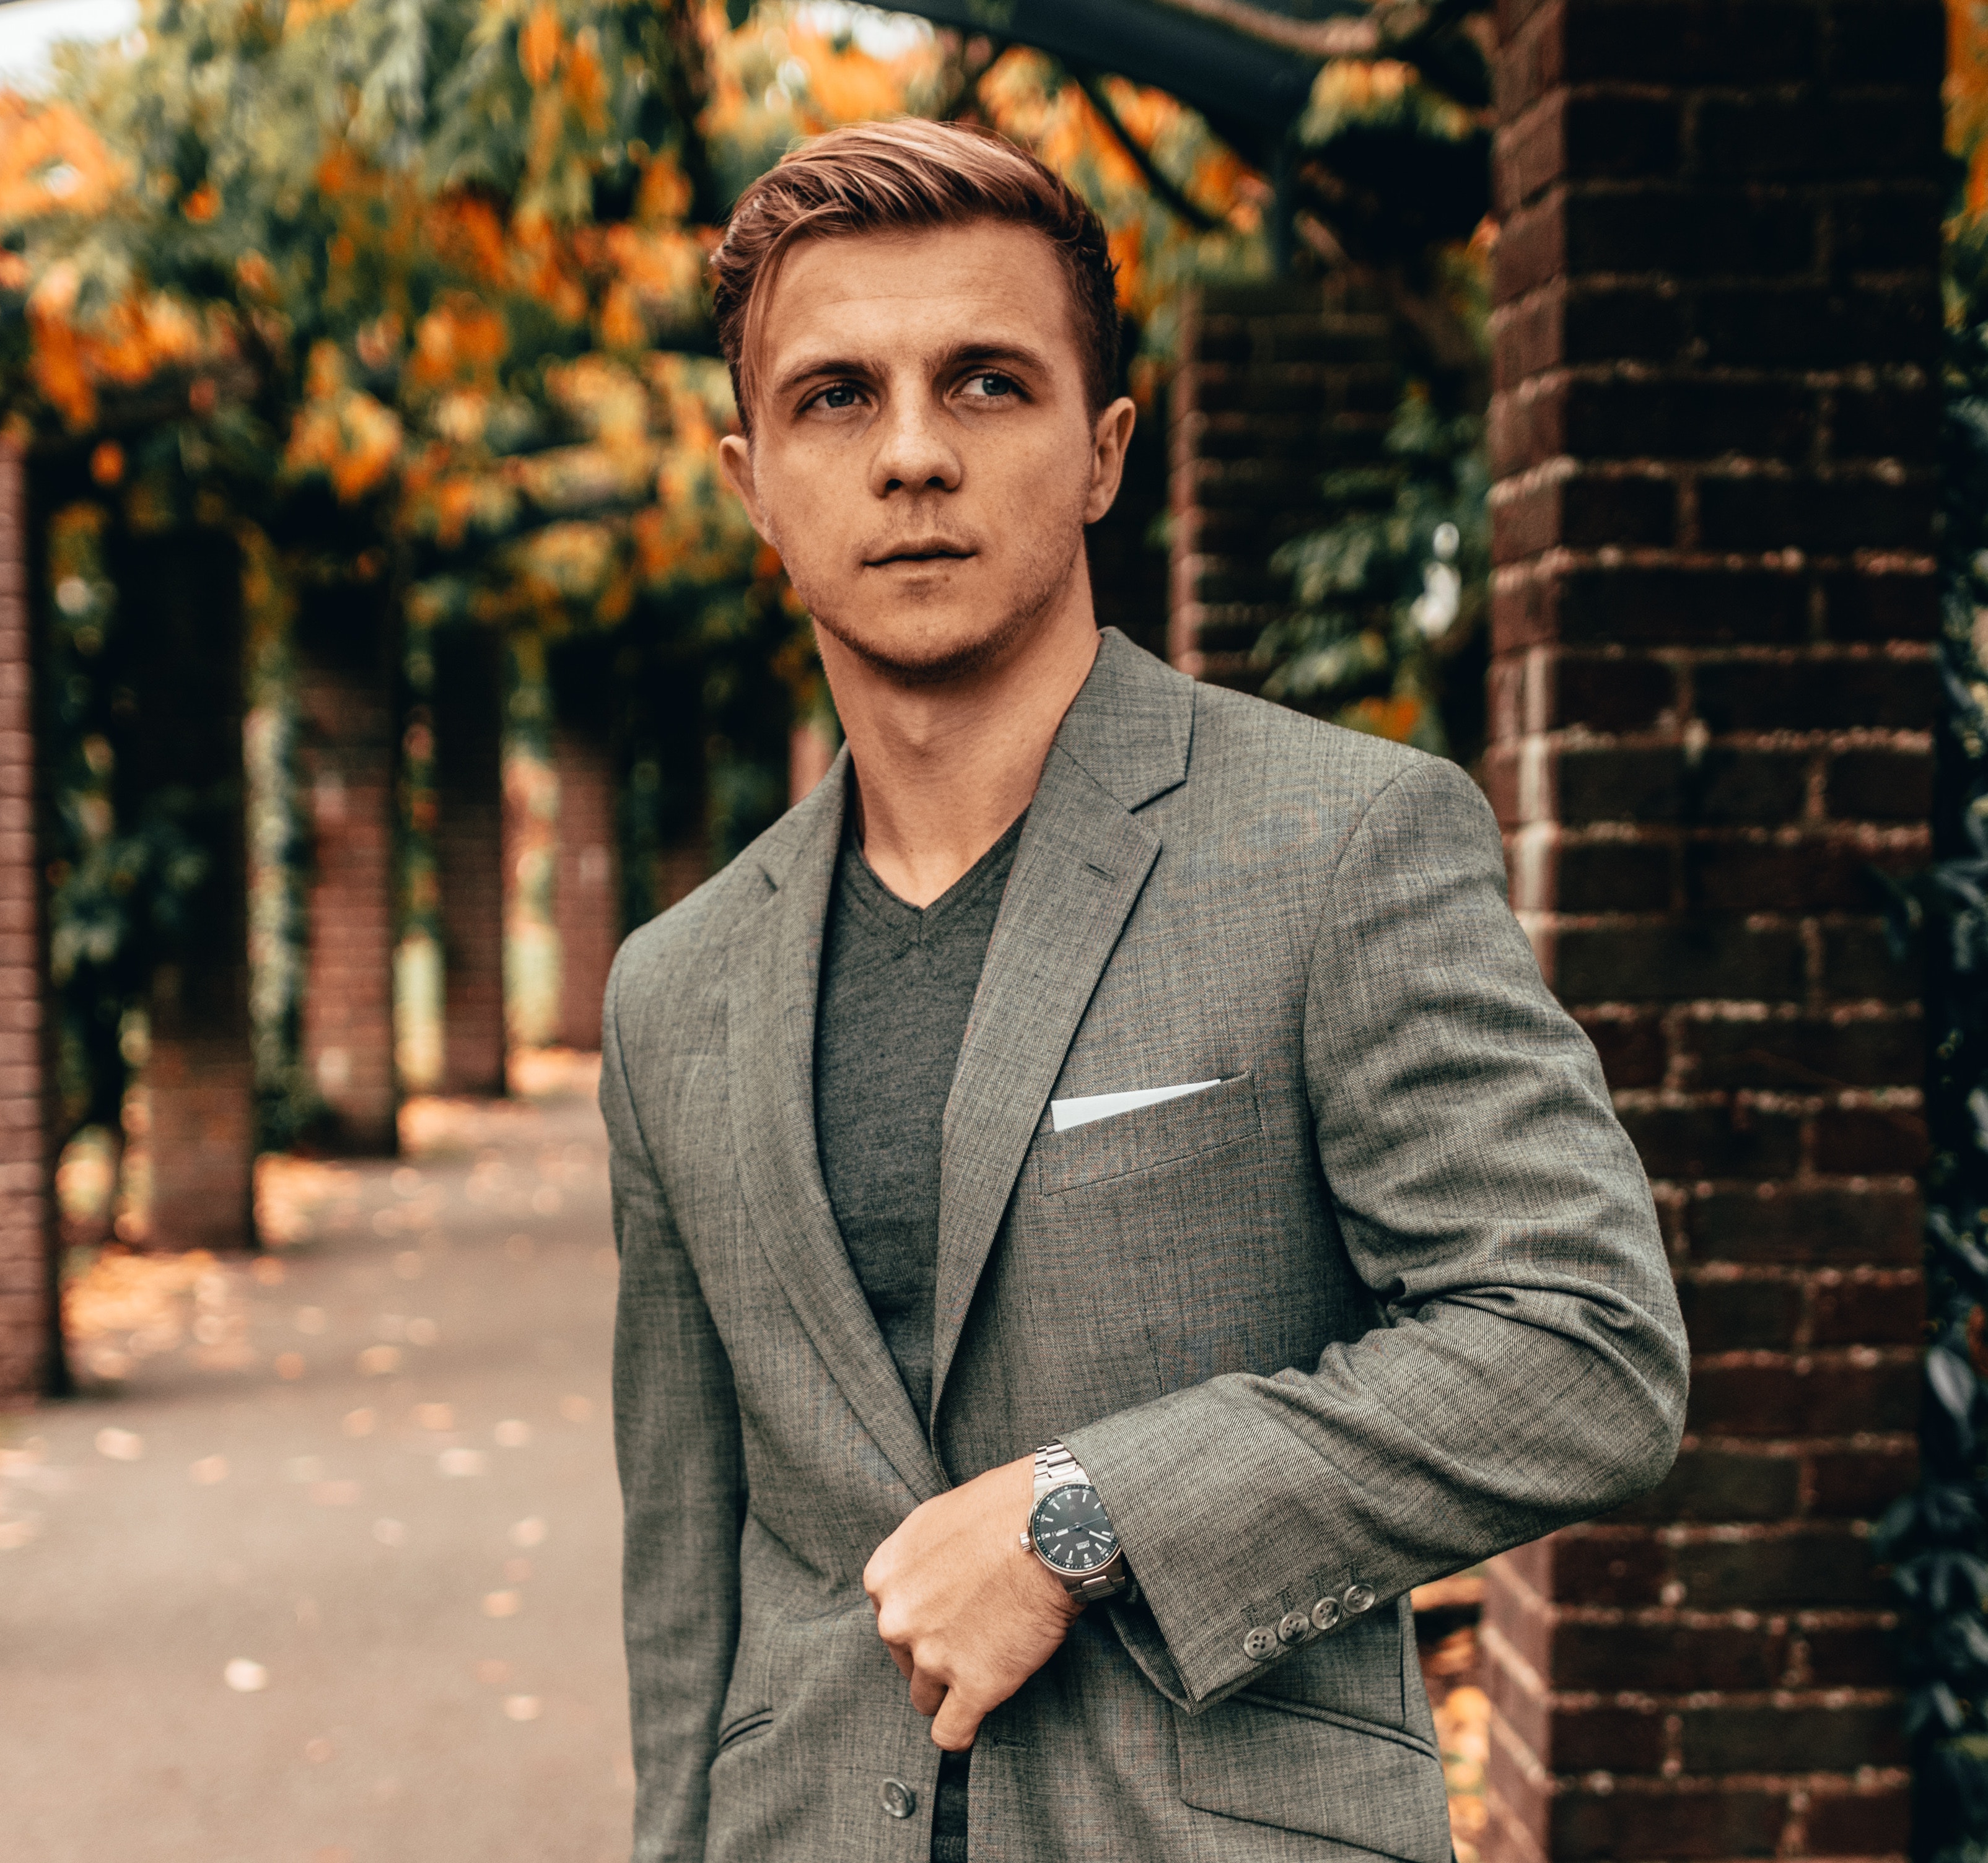 Mens Summer Wedding Attire.The Guy S Summer Style Guide For Weddings